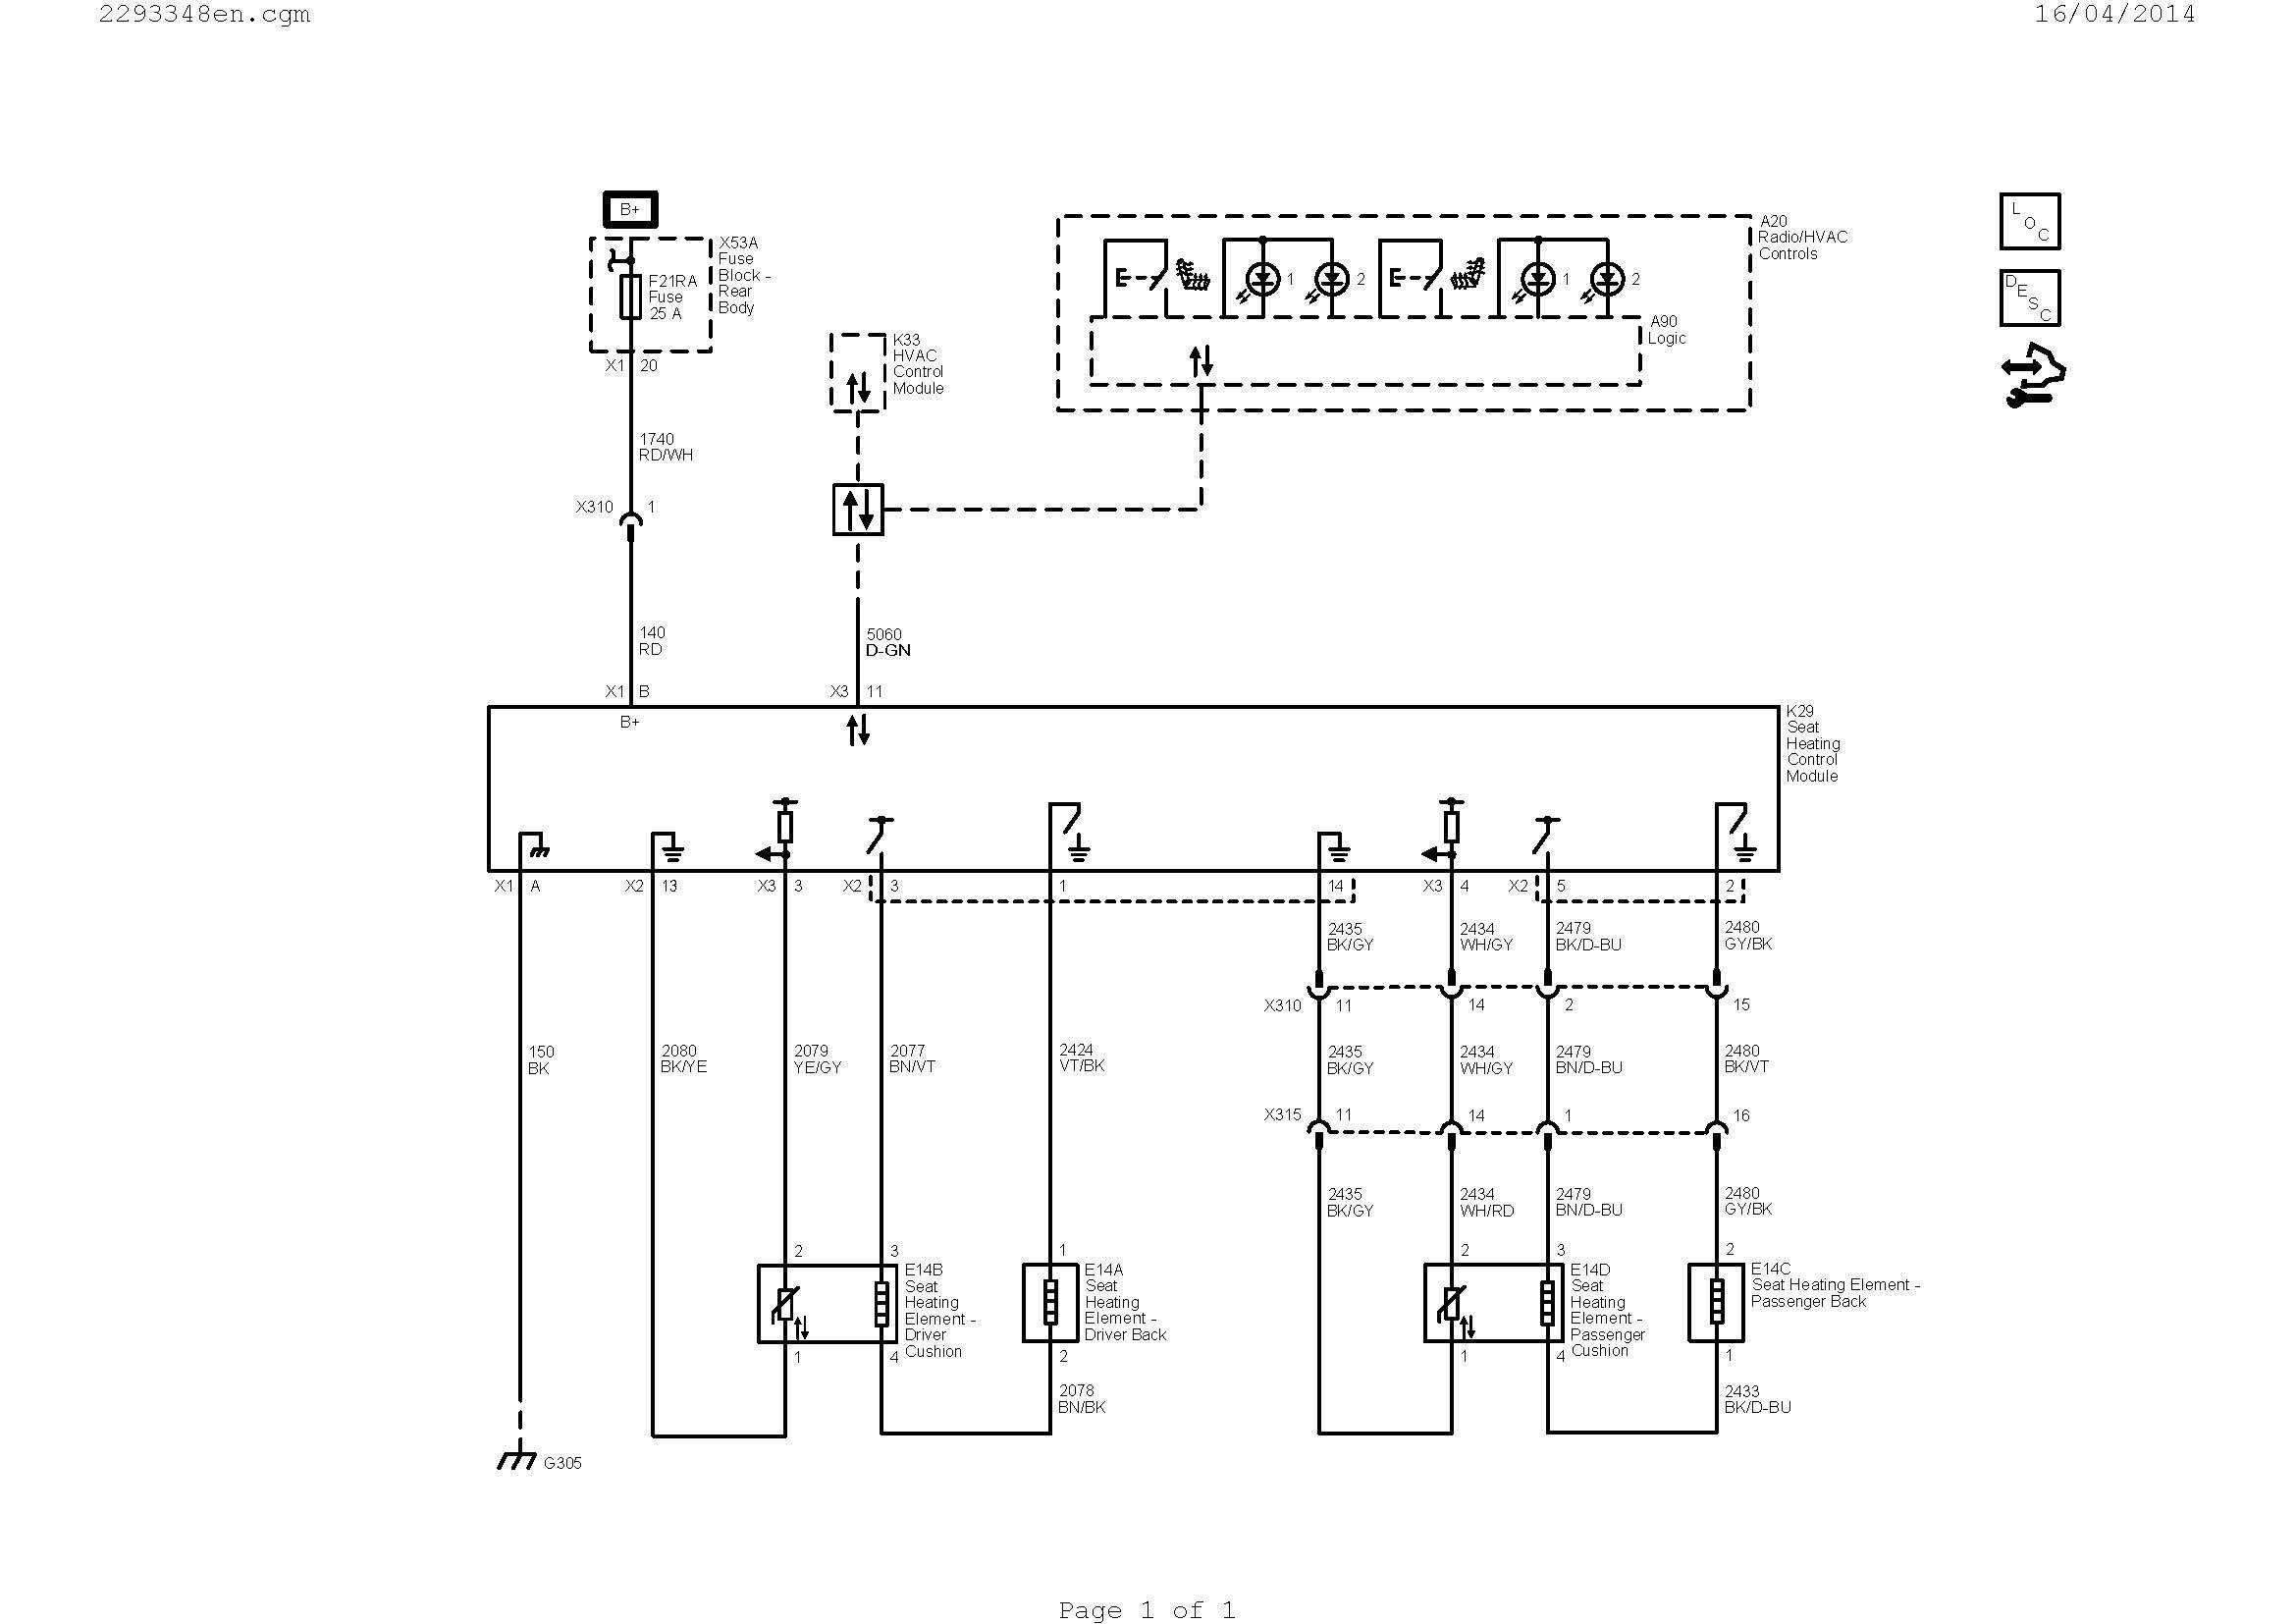 lennox furnace thermostat wiring diagram Collection-air conditioner thermostat wiring diagram Download Wiring A Ac Thermostat Diagram New Wiring Diagram Ac 6-r